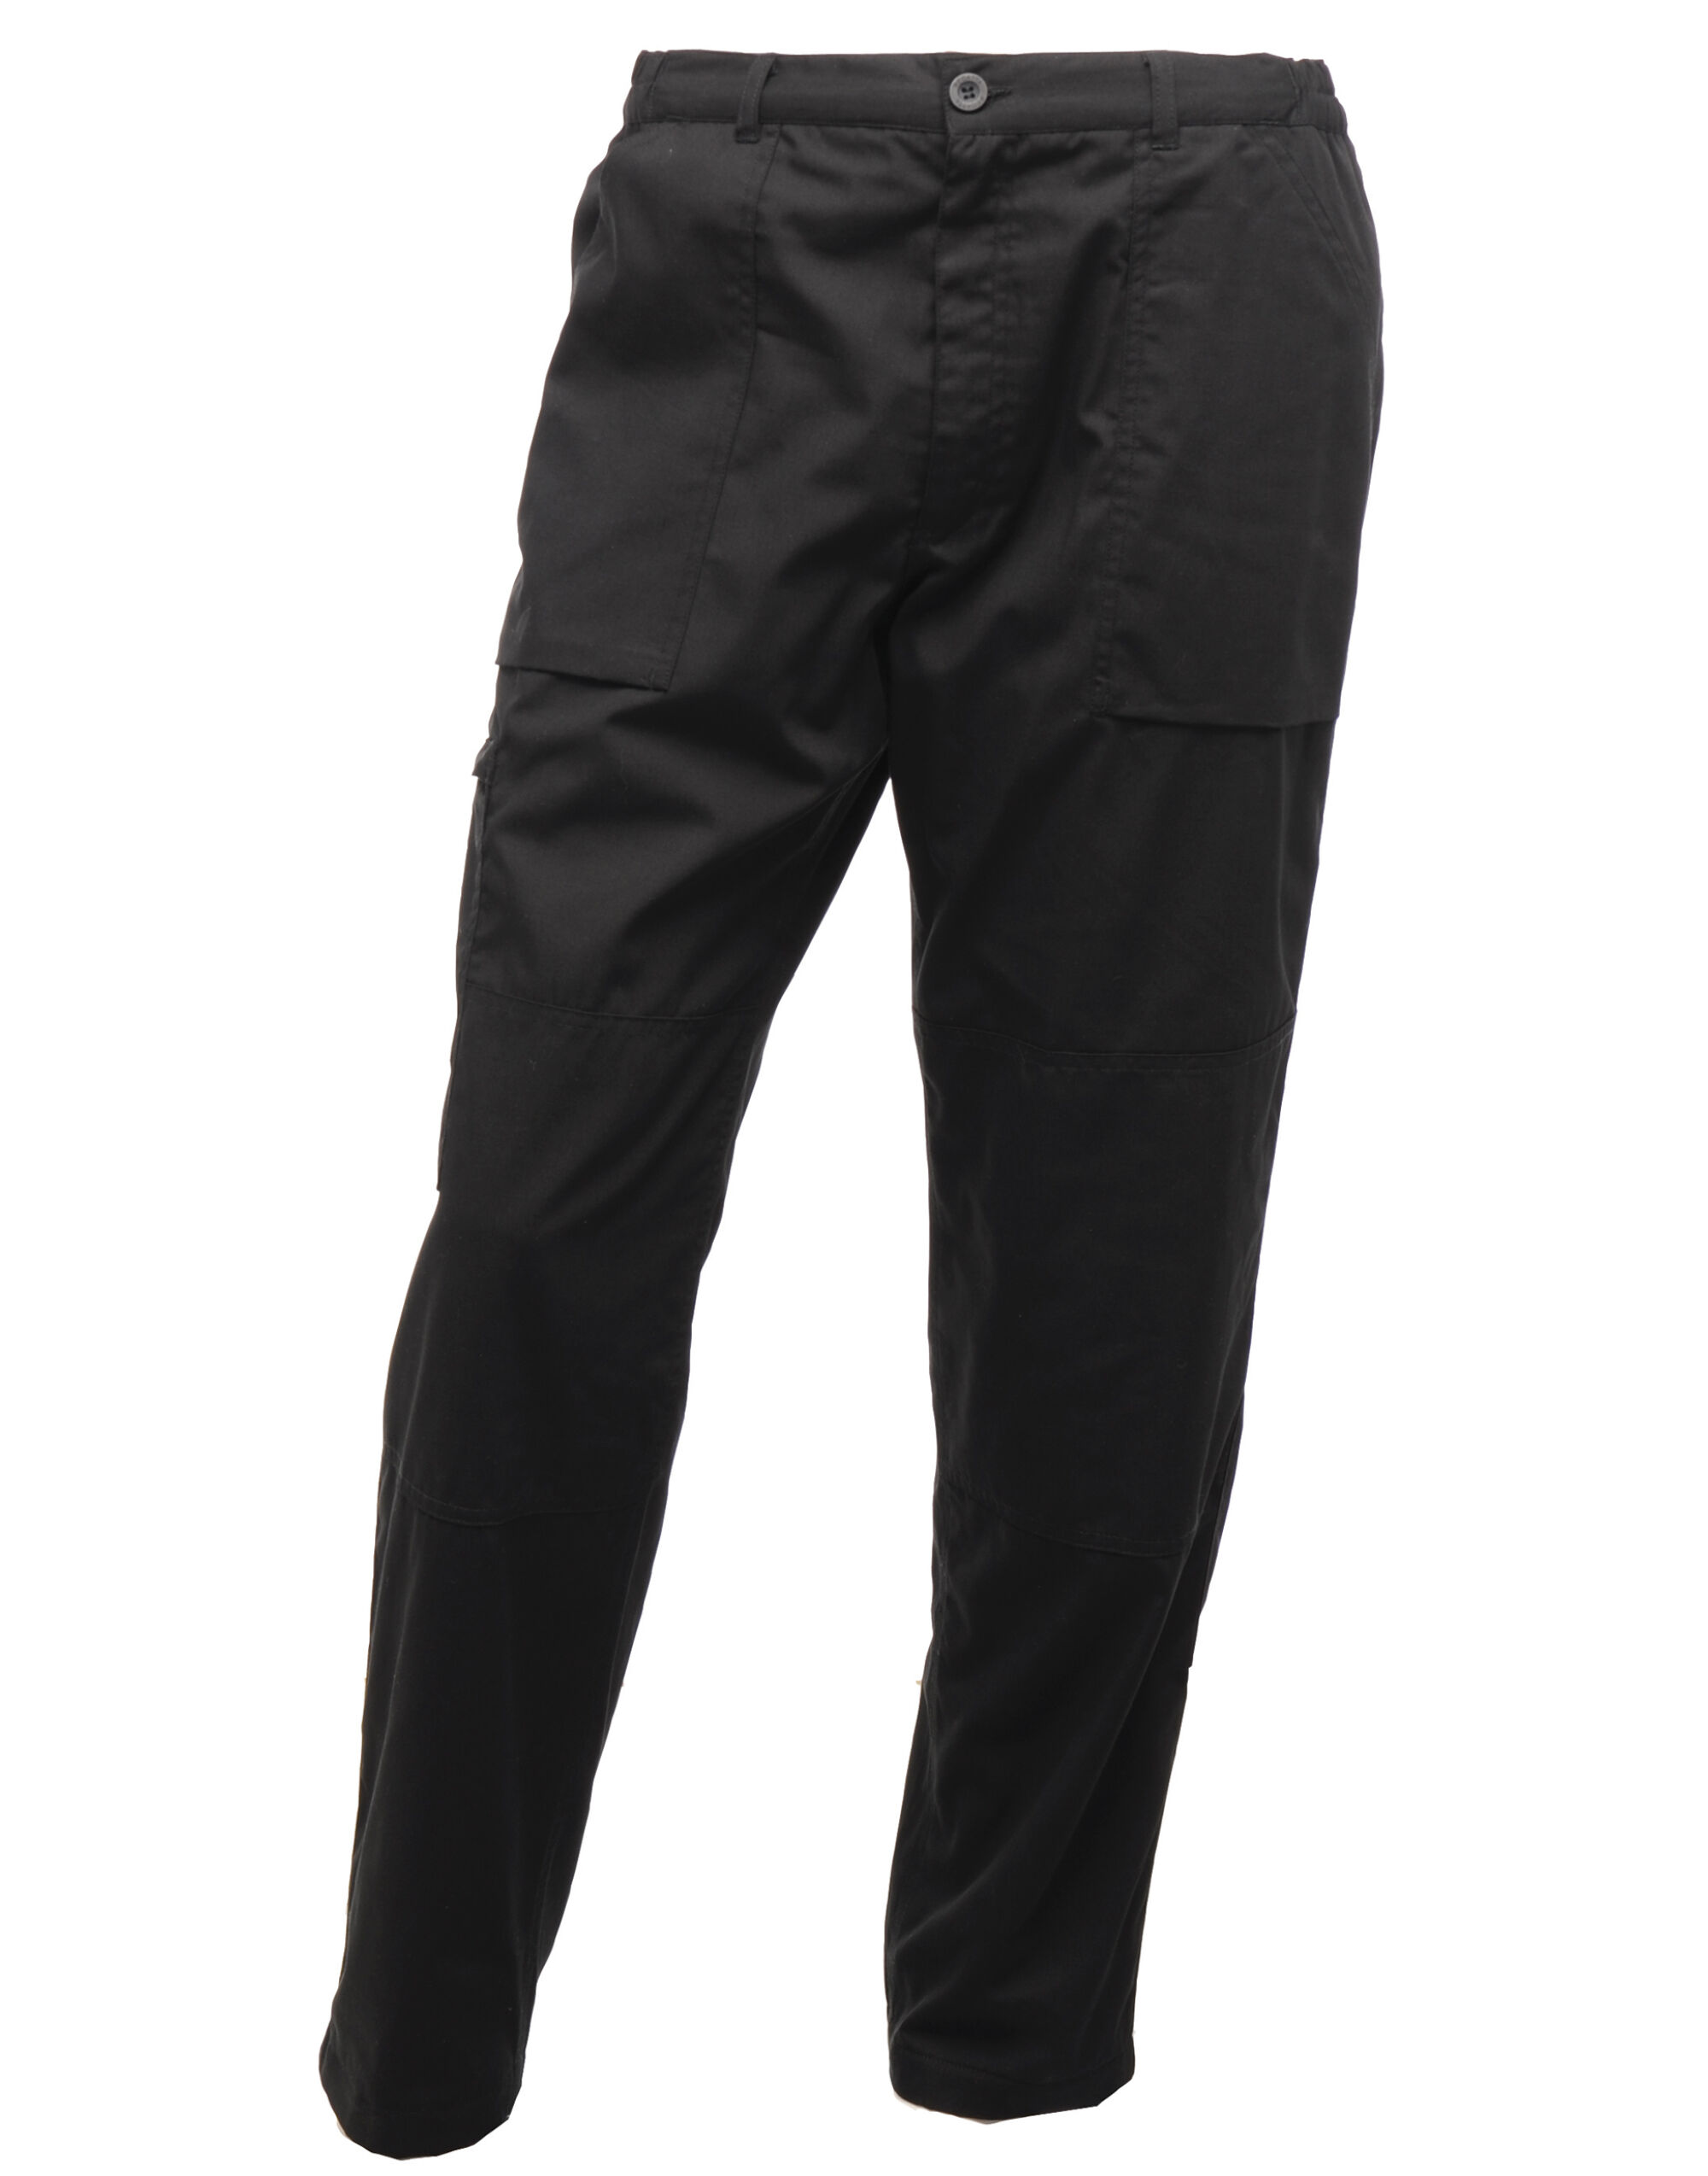 New Lined Action Trousers (Reg)